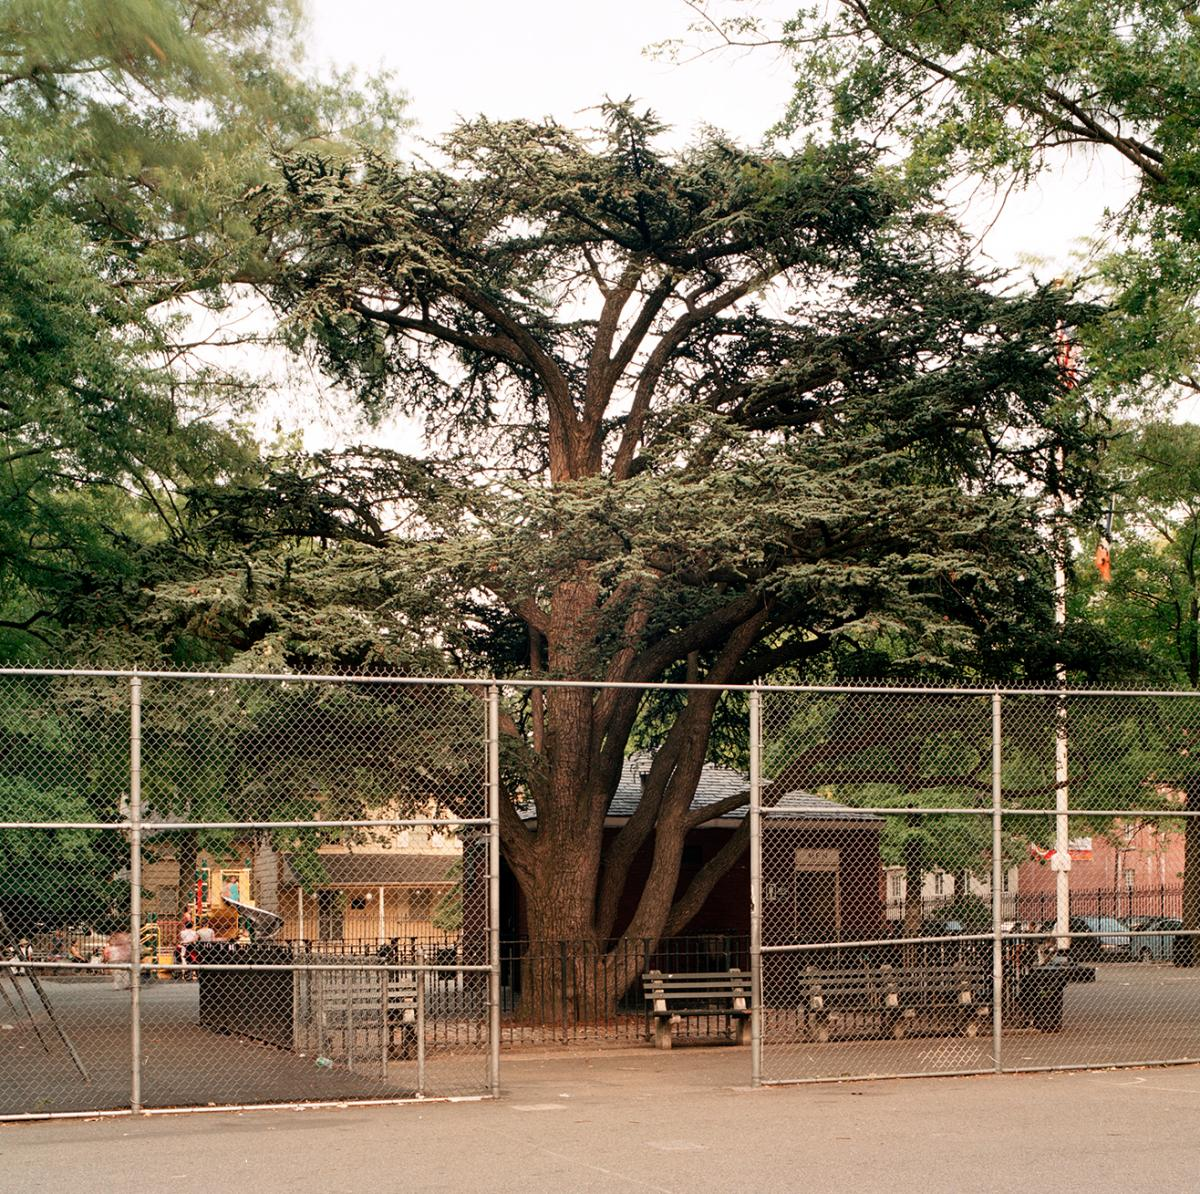 Cedar of Lebanon in Weeping Beech Park, Flushing, Queens, taken on July 28, 2010. The multiple trunks had a combined diameter of 100.5 inches. The height was approximately 30 feet. The tree is about 120 years old.